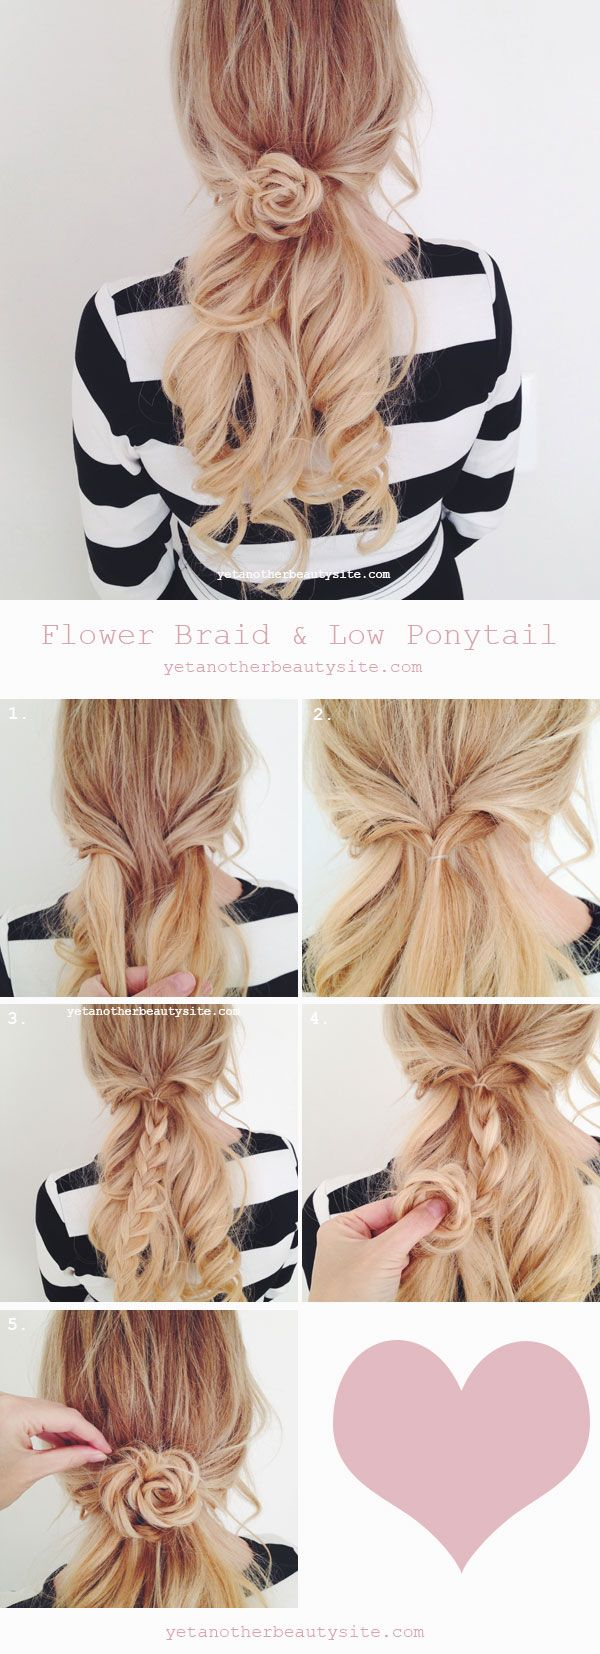 Flower Braid Low Ponytail Hairstyle Tutorial